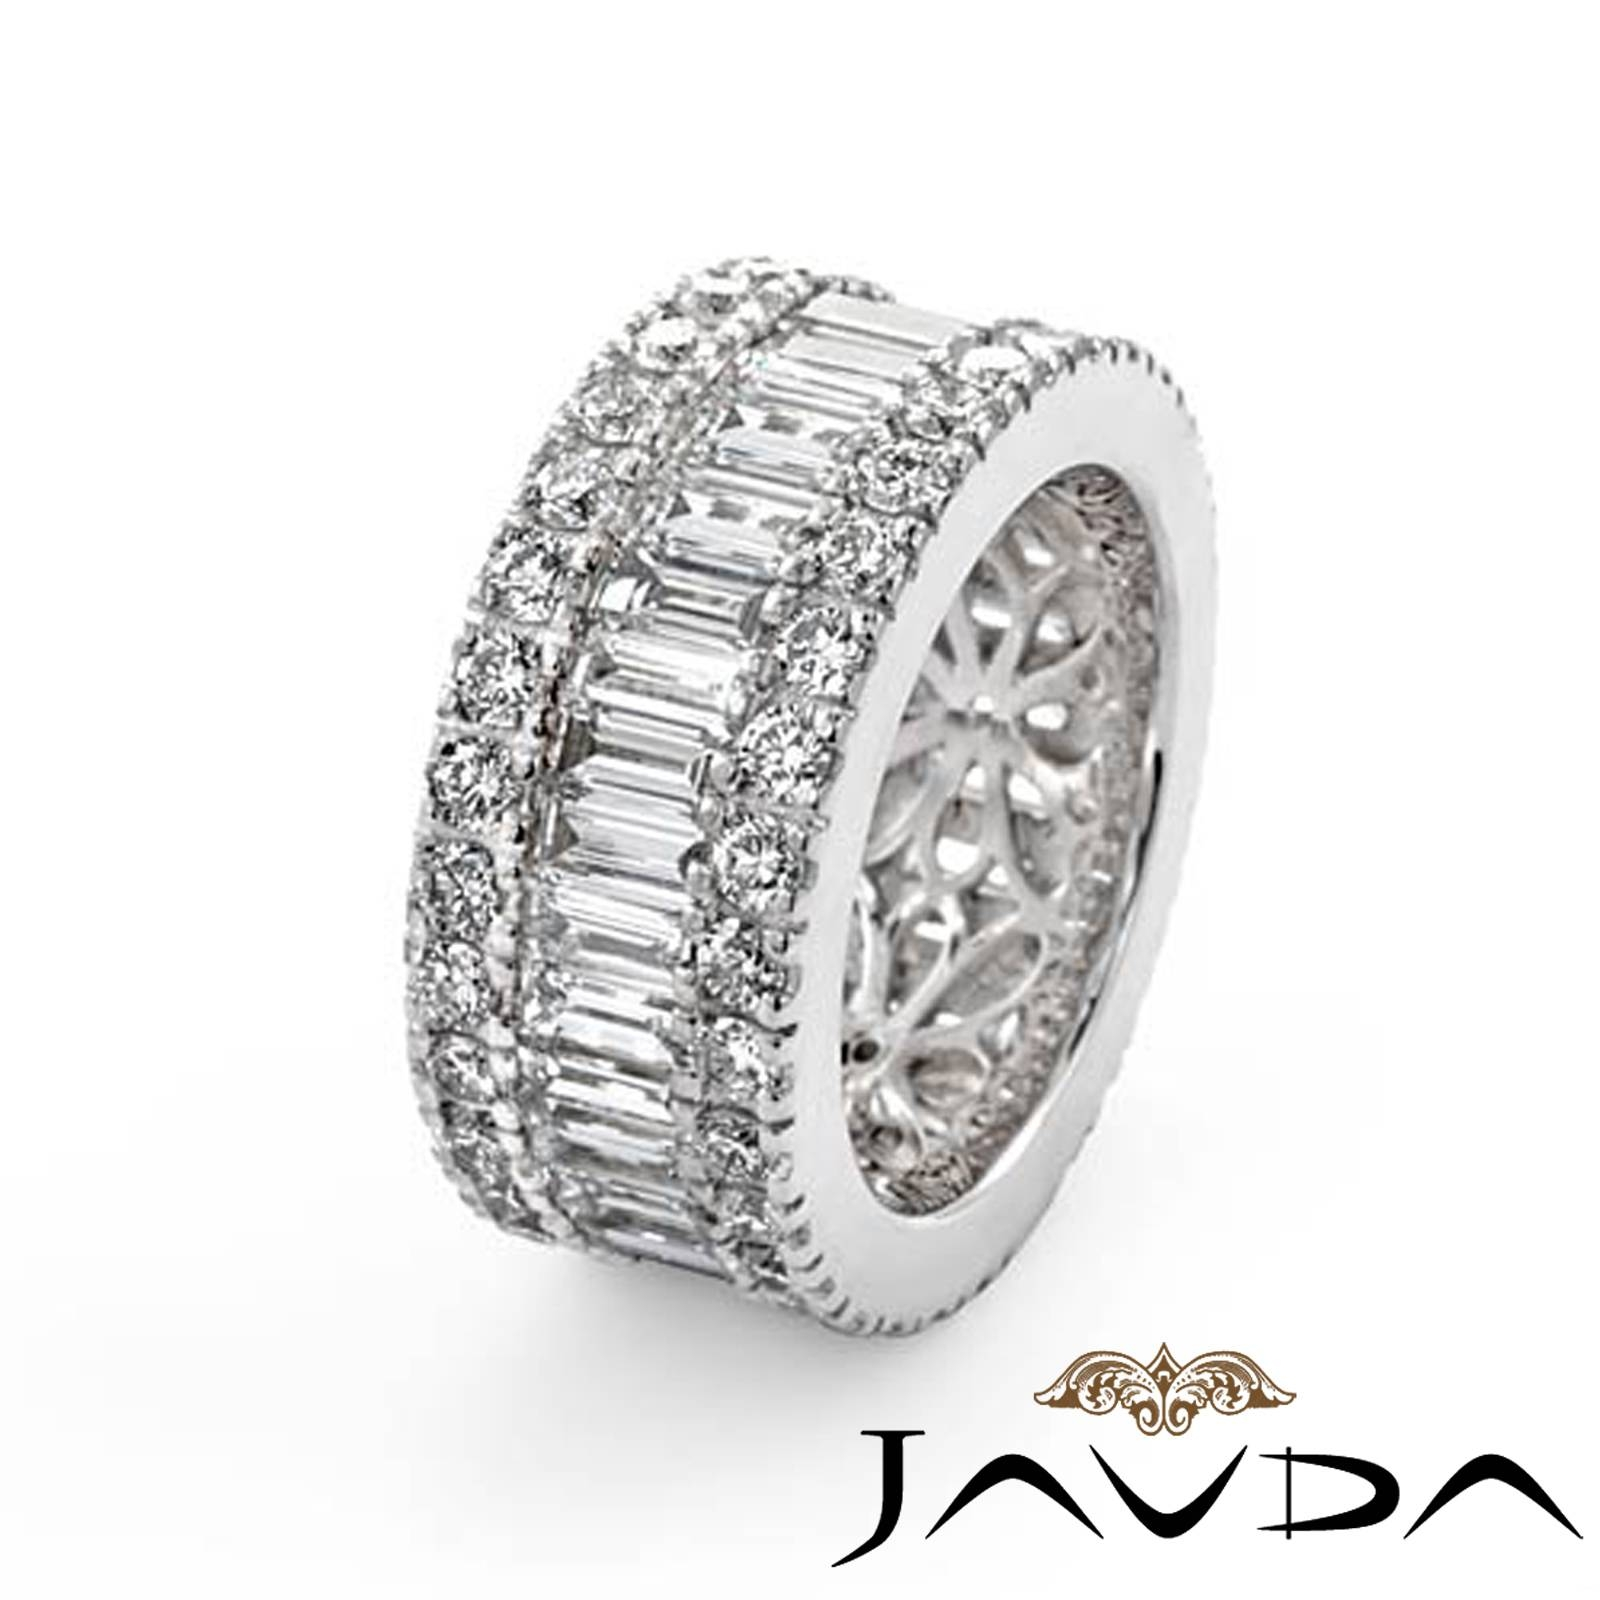 Women Wedding Band With Regard To Women Diamond Wedding Bands (Gallery 13 of 15)